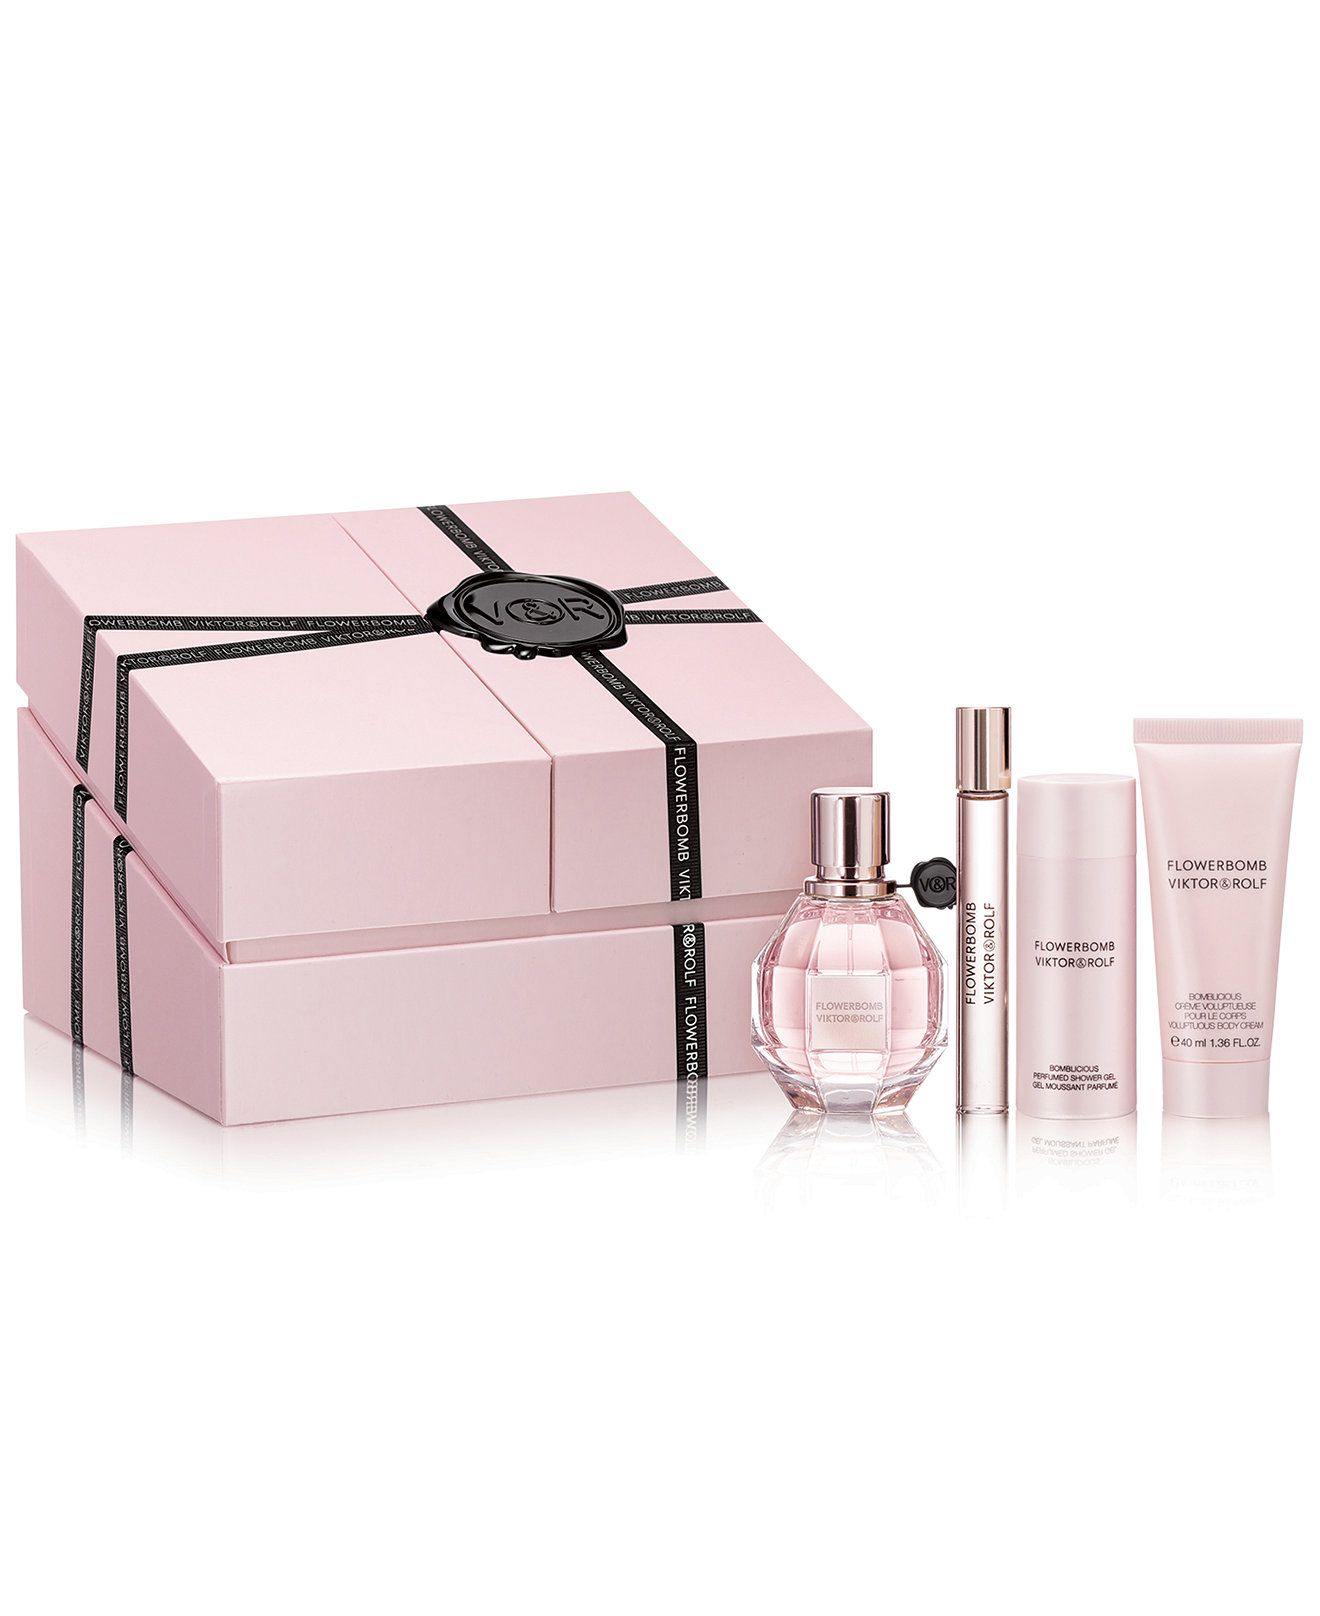 Viktor Rolf Flowerbomb Gift Set Perfume Beauty Macy S Best Mothers Day Gifts Beauty Gift Perfume Set